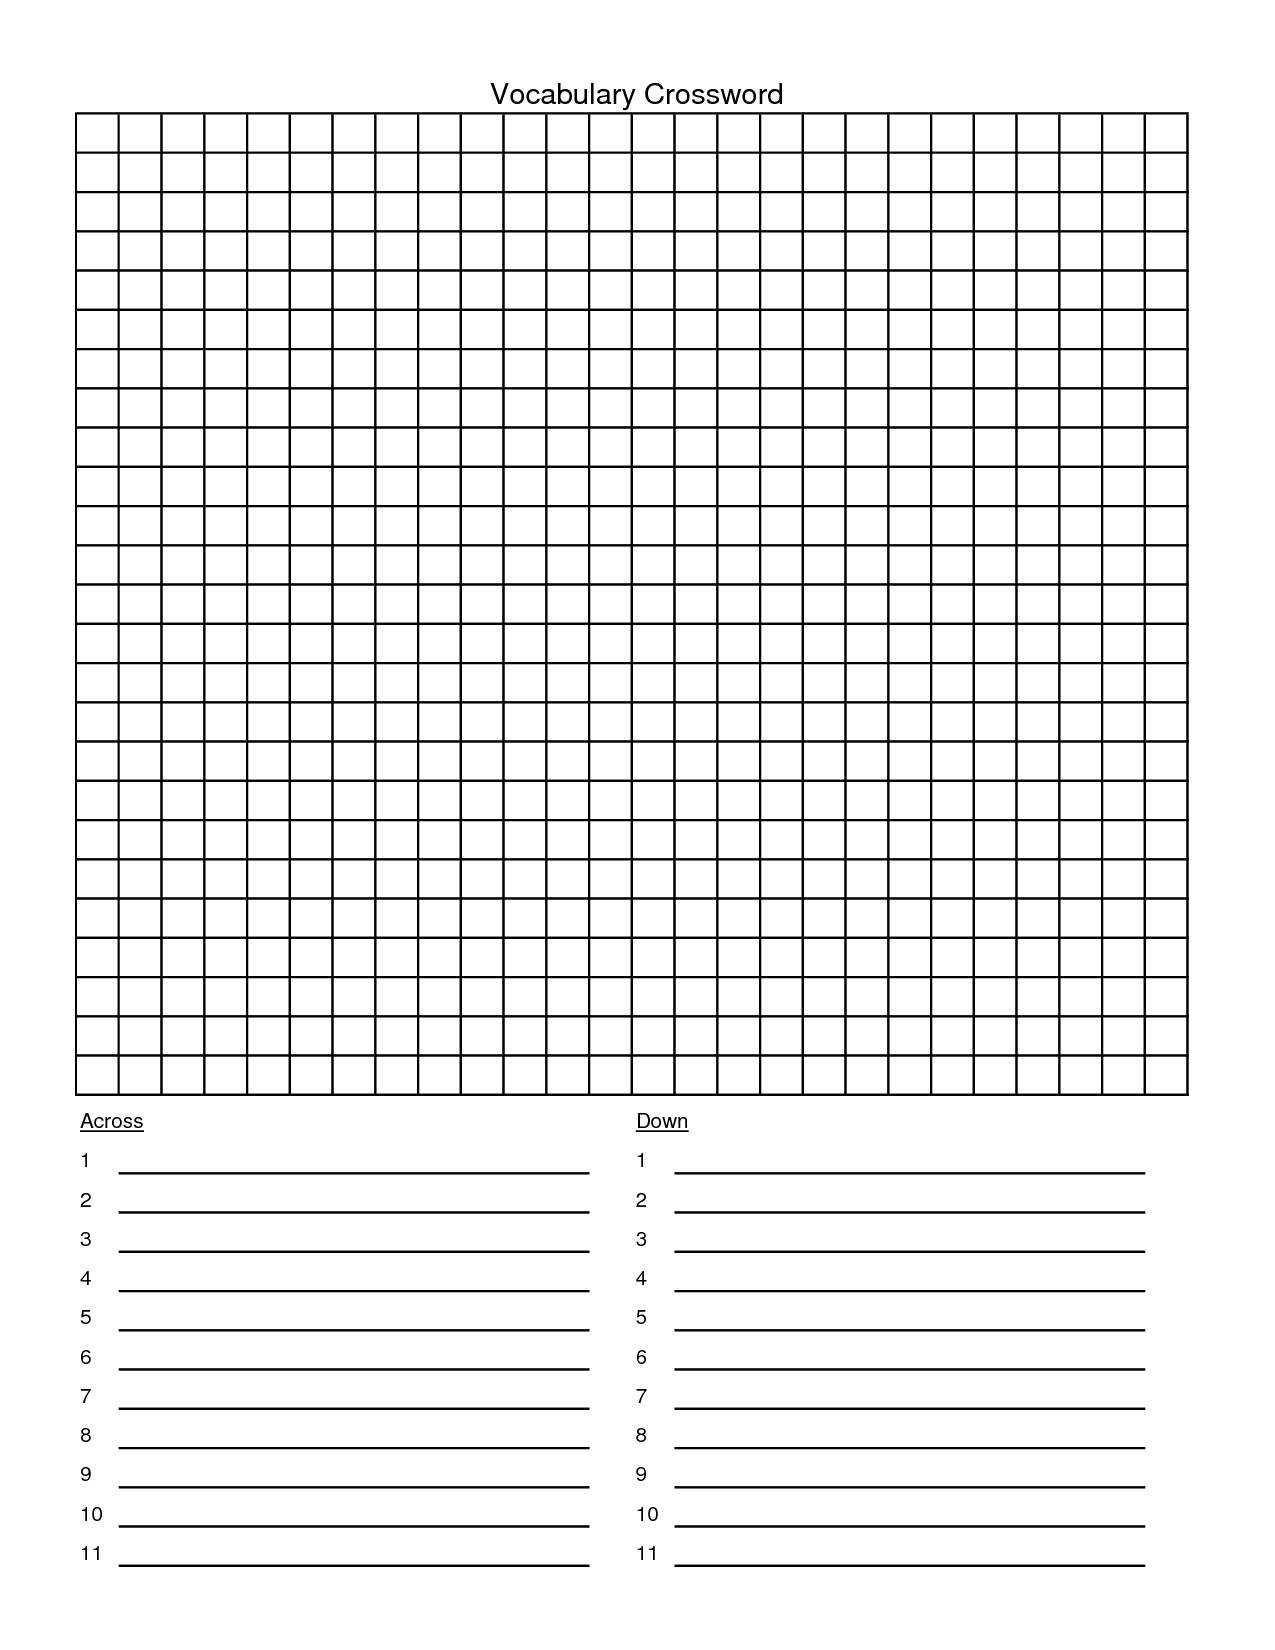 Crossword Puzzle Template - Yapis.sticken.co - Printable Crossword Puzzle Template